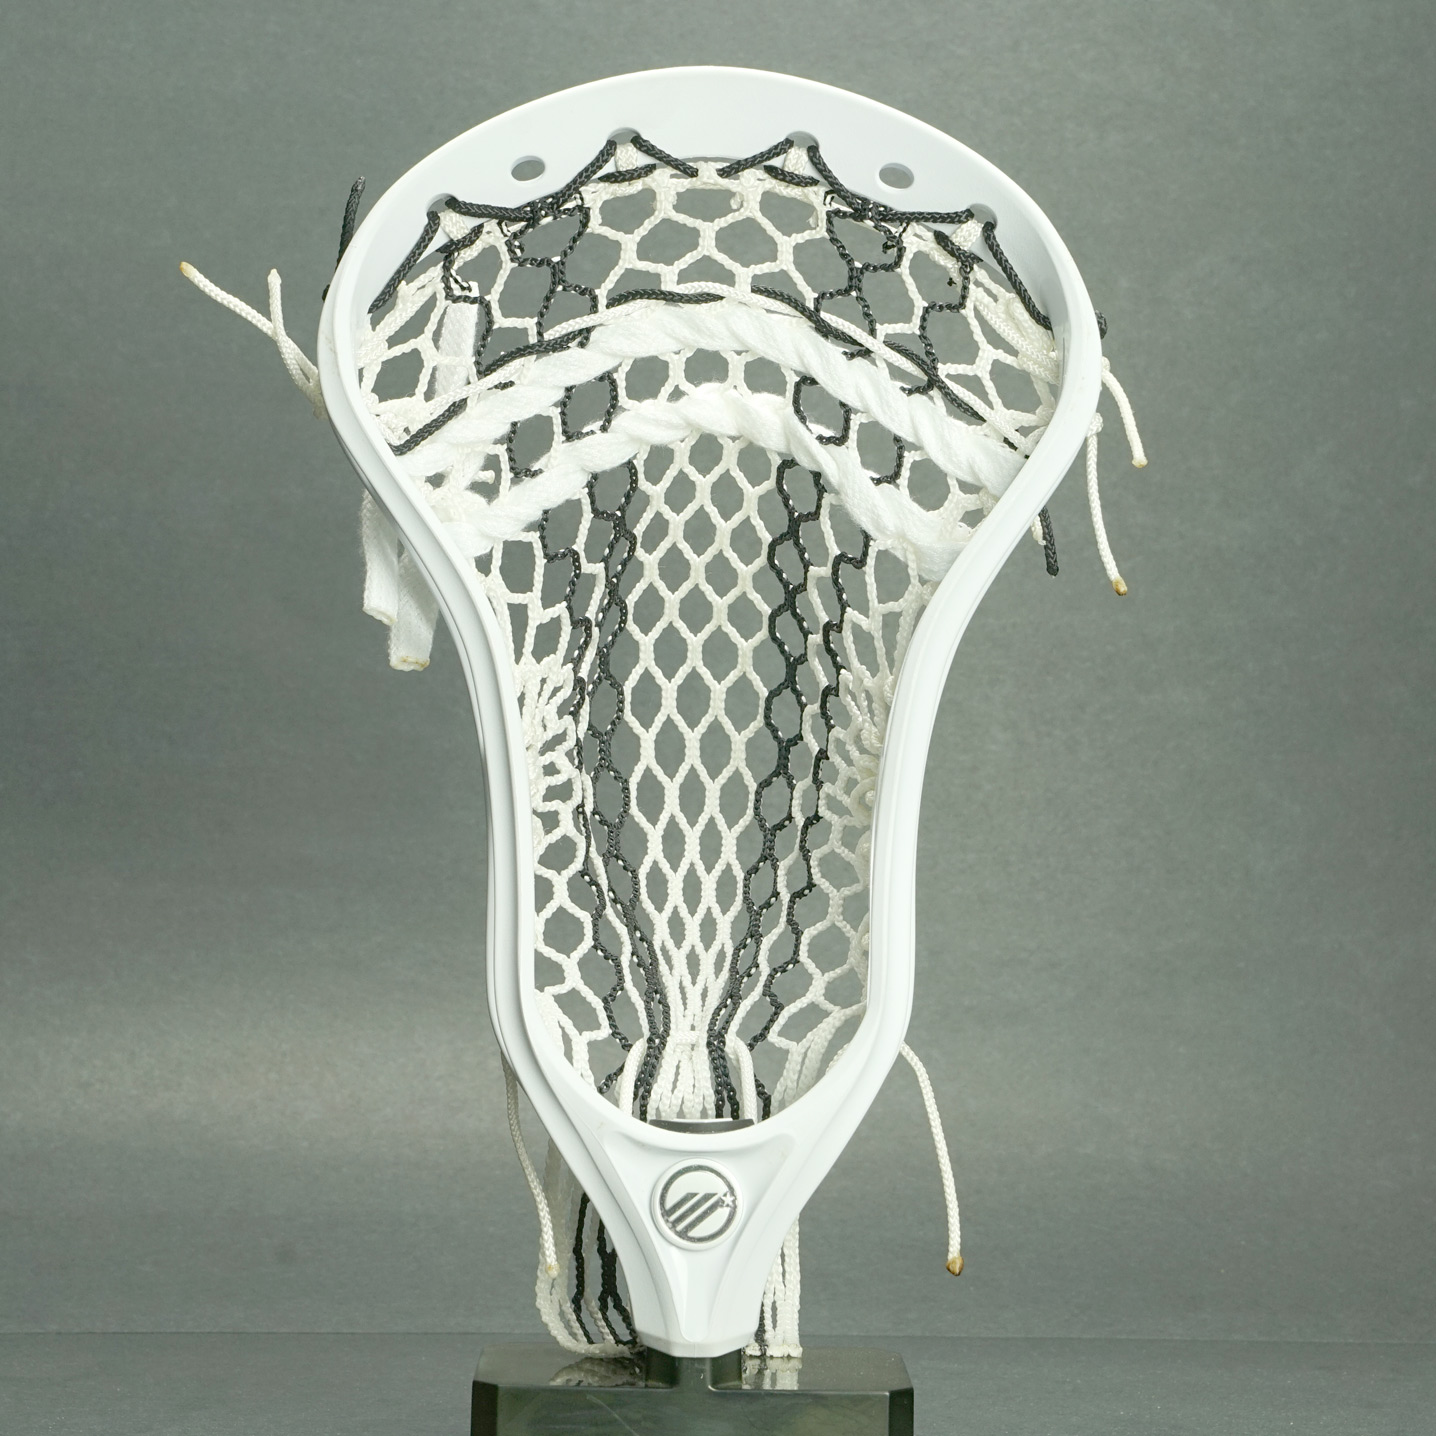 Maverik Optik U Lacrosse Head Prestrung with SNIPER Hero 2.0 Pocket